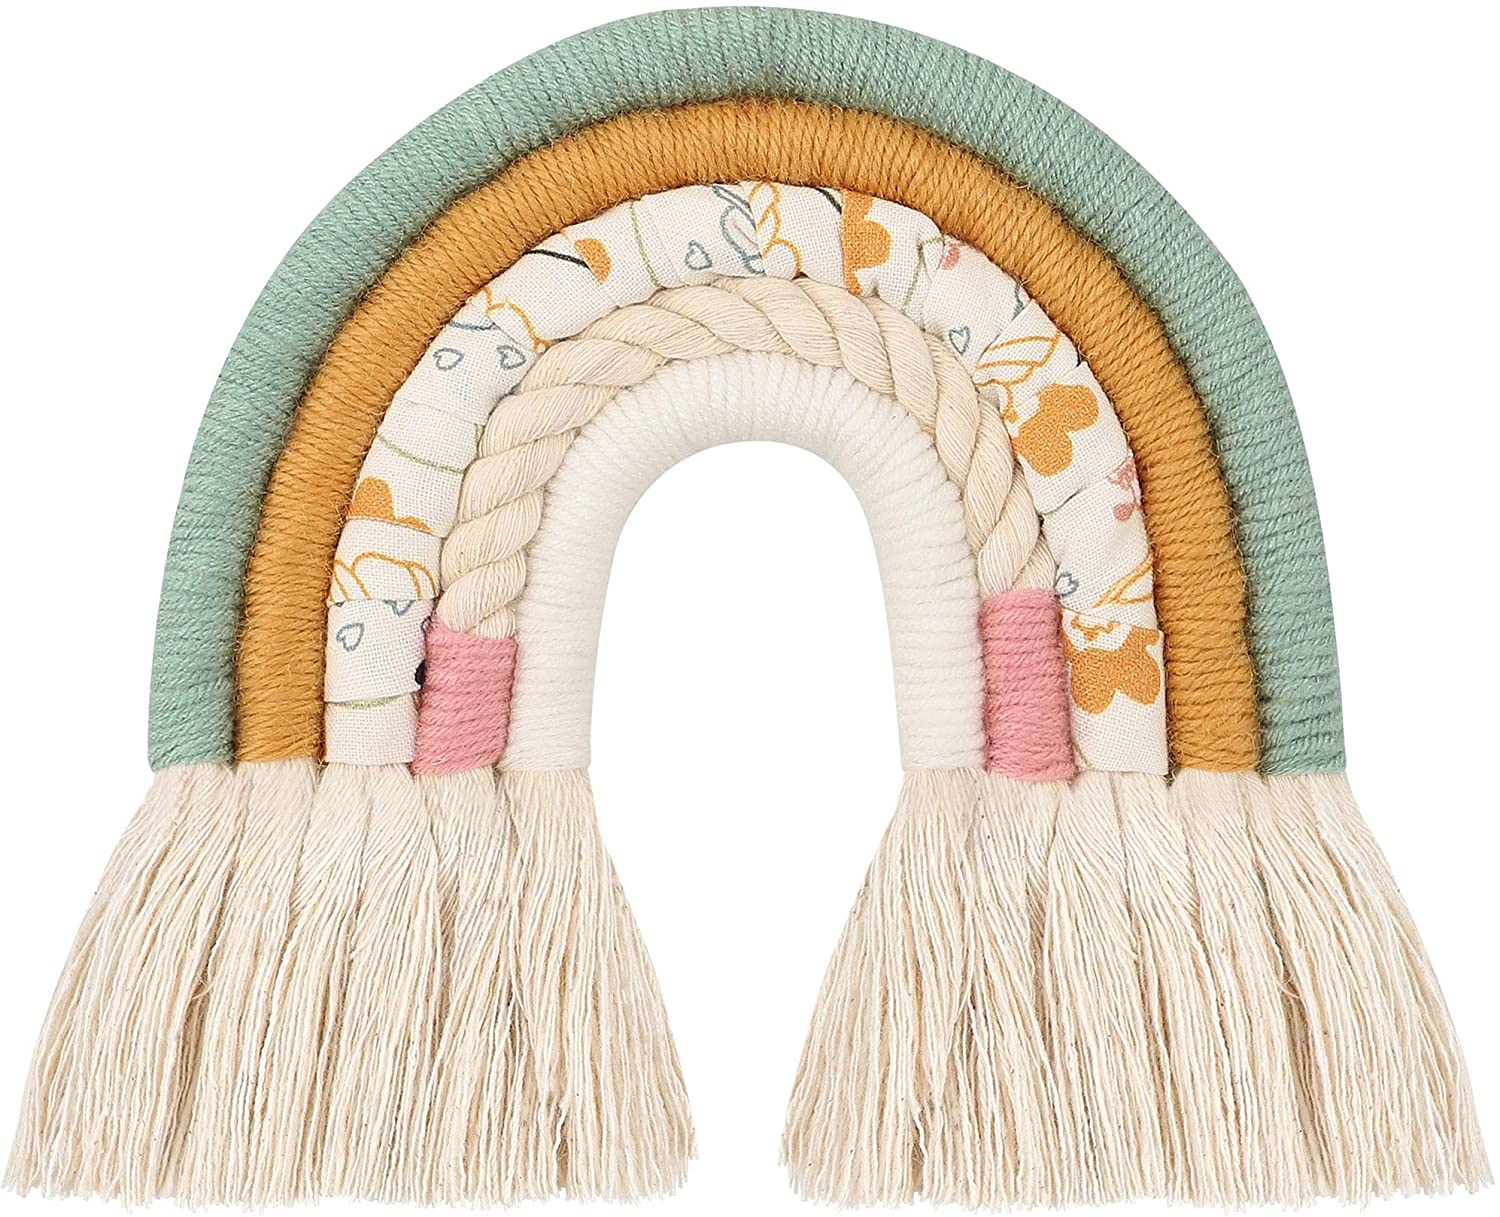 Peggy ZJ Rainbow Wall Hanging, Nordic Woven Rainbow Wall Hanging, Boho Decor Macrame Rainbow Wall Hanging for Baby Girls Kids Nursery Rooms,Modern Home Hanging,Green Pattern Cloth(8.2x8.2 inches